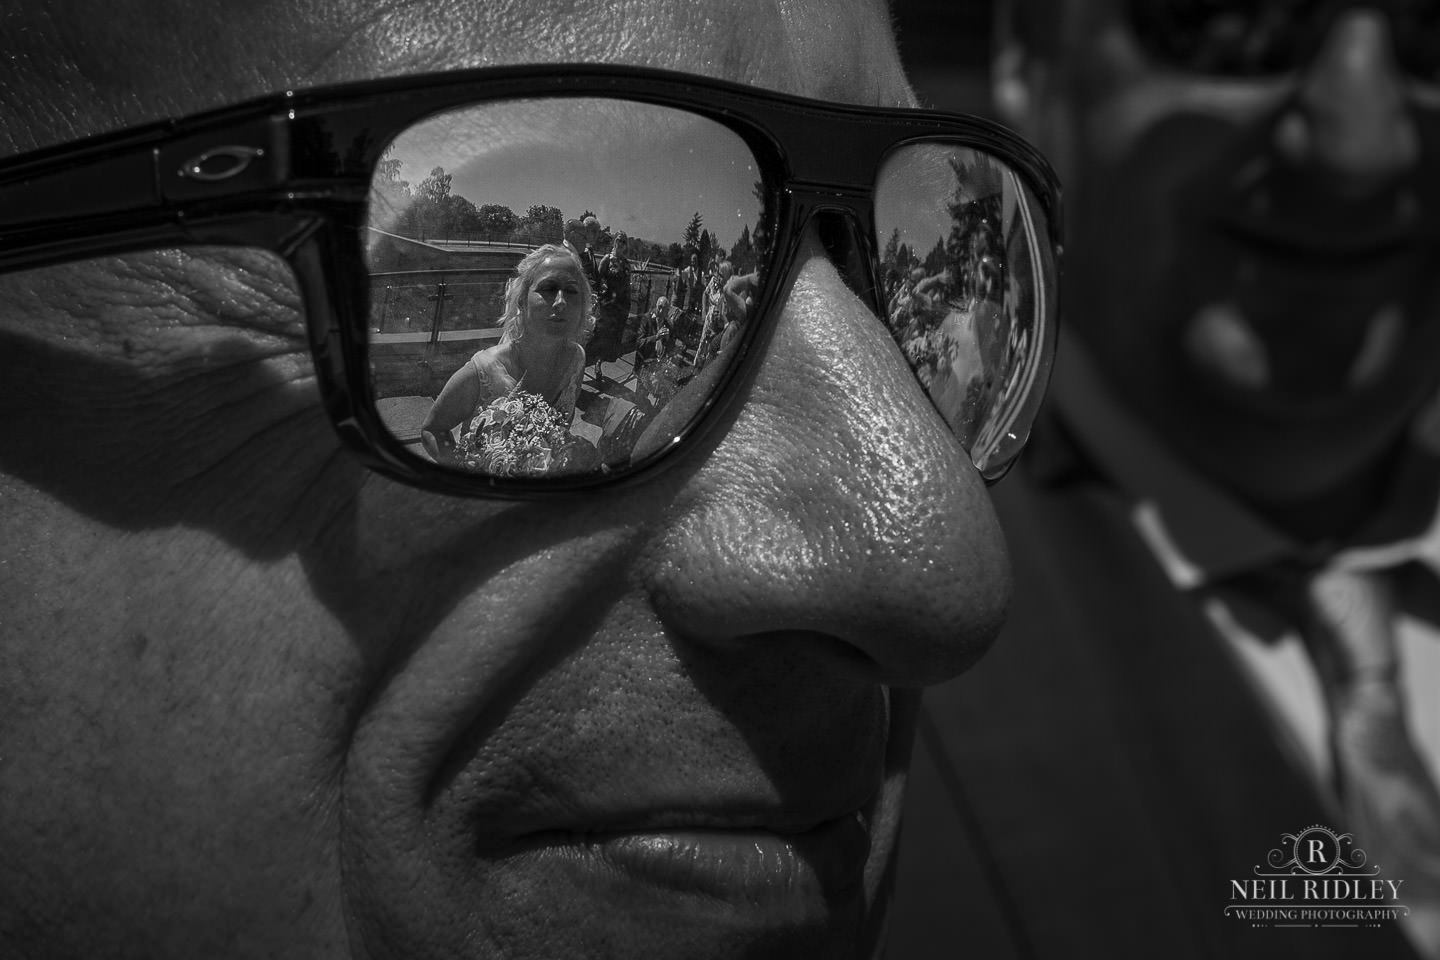 Black and white image of wedding guest wearing sunglasses with Brides reflection in the lens at Macdonald Portal Hotel, Tarporley